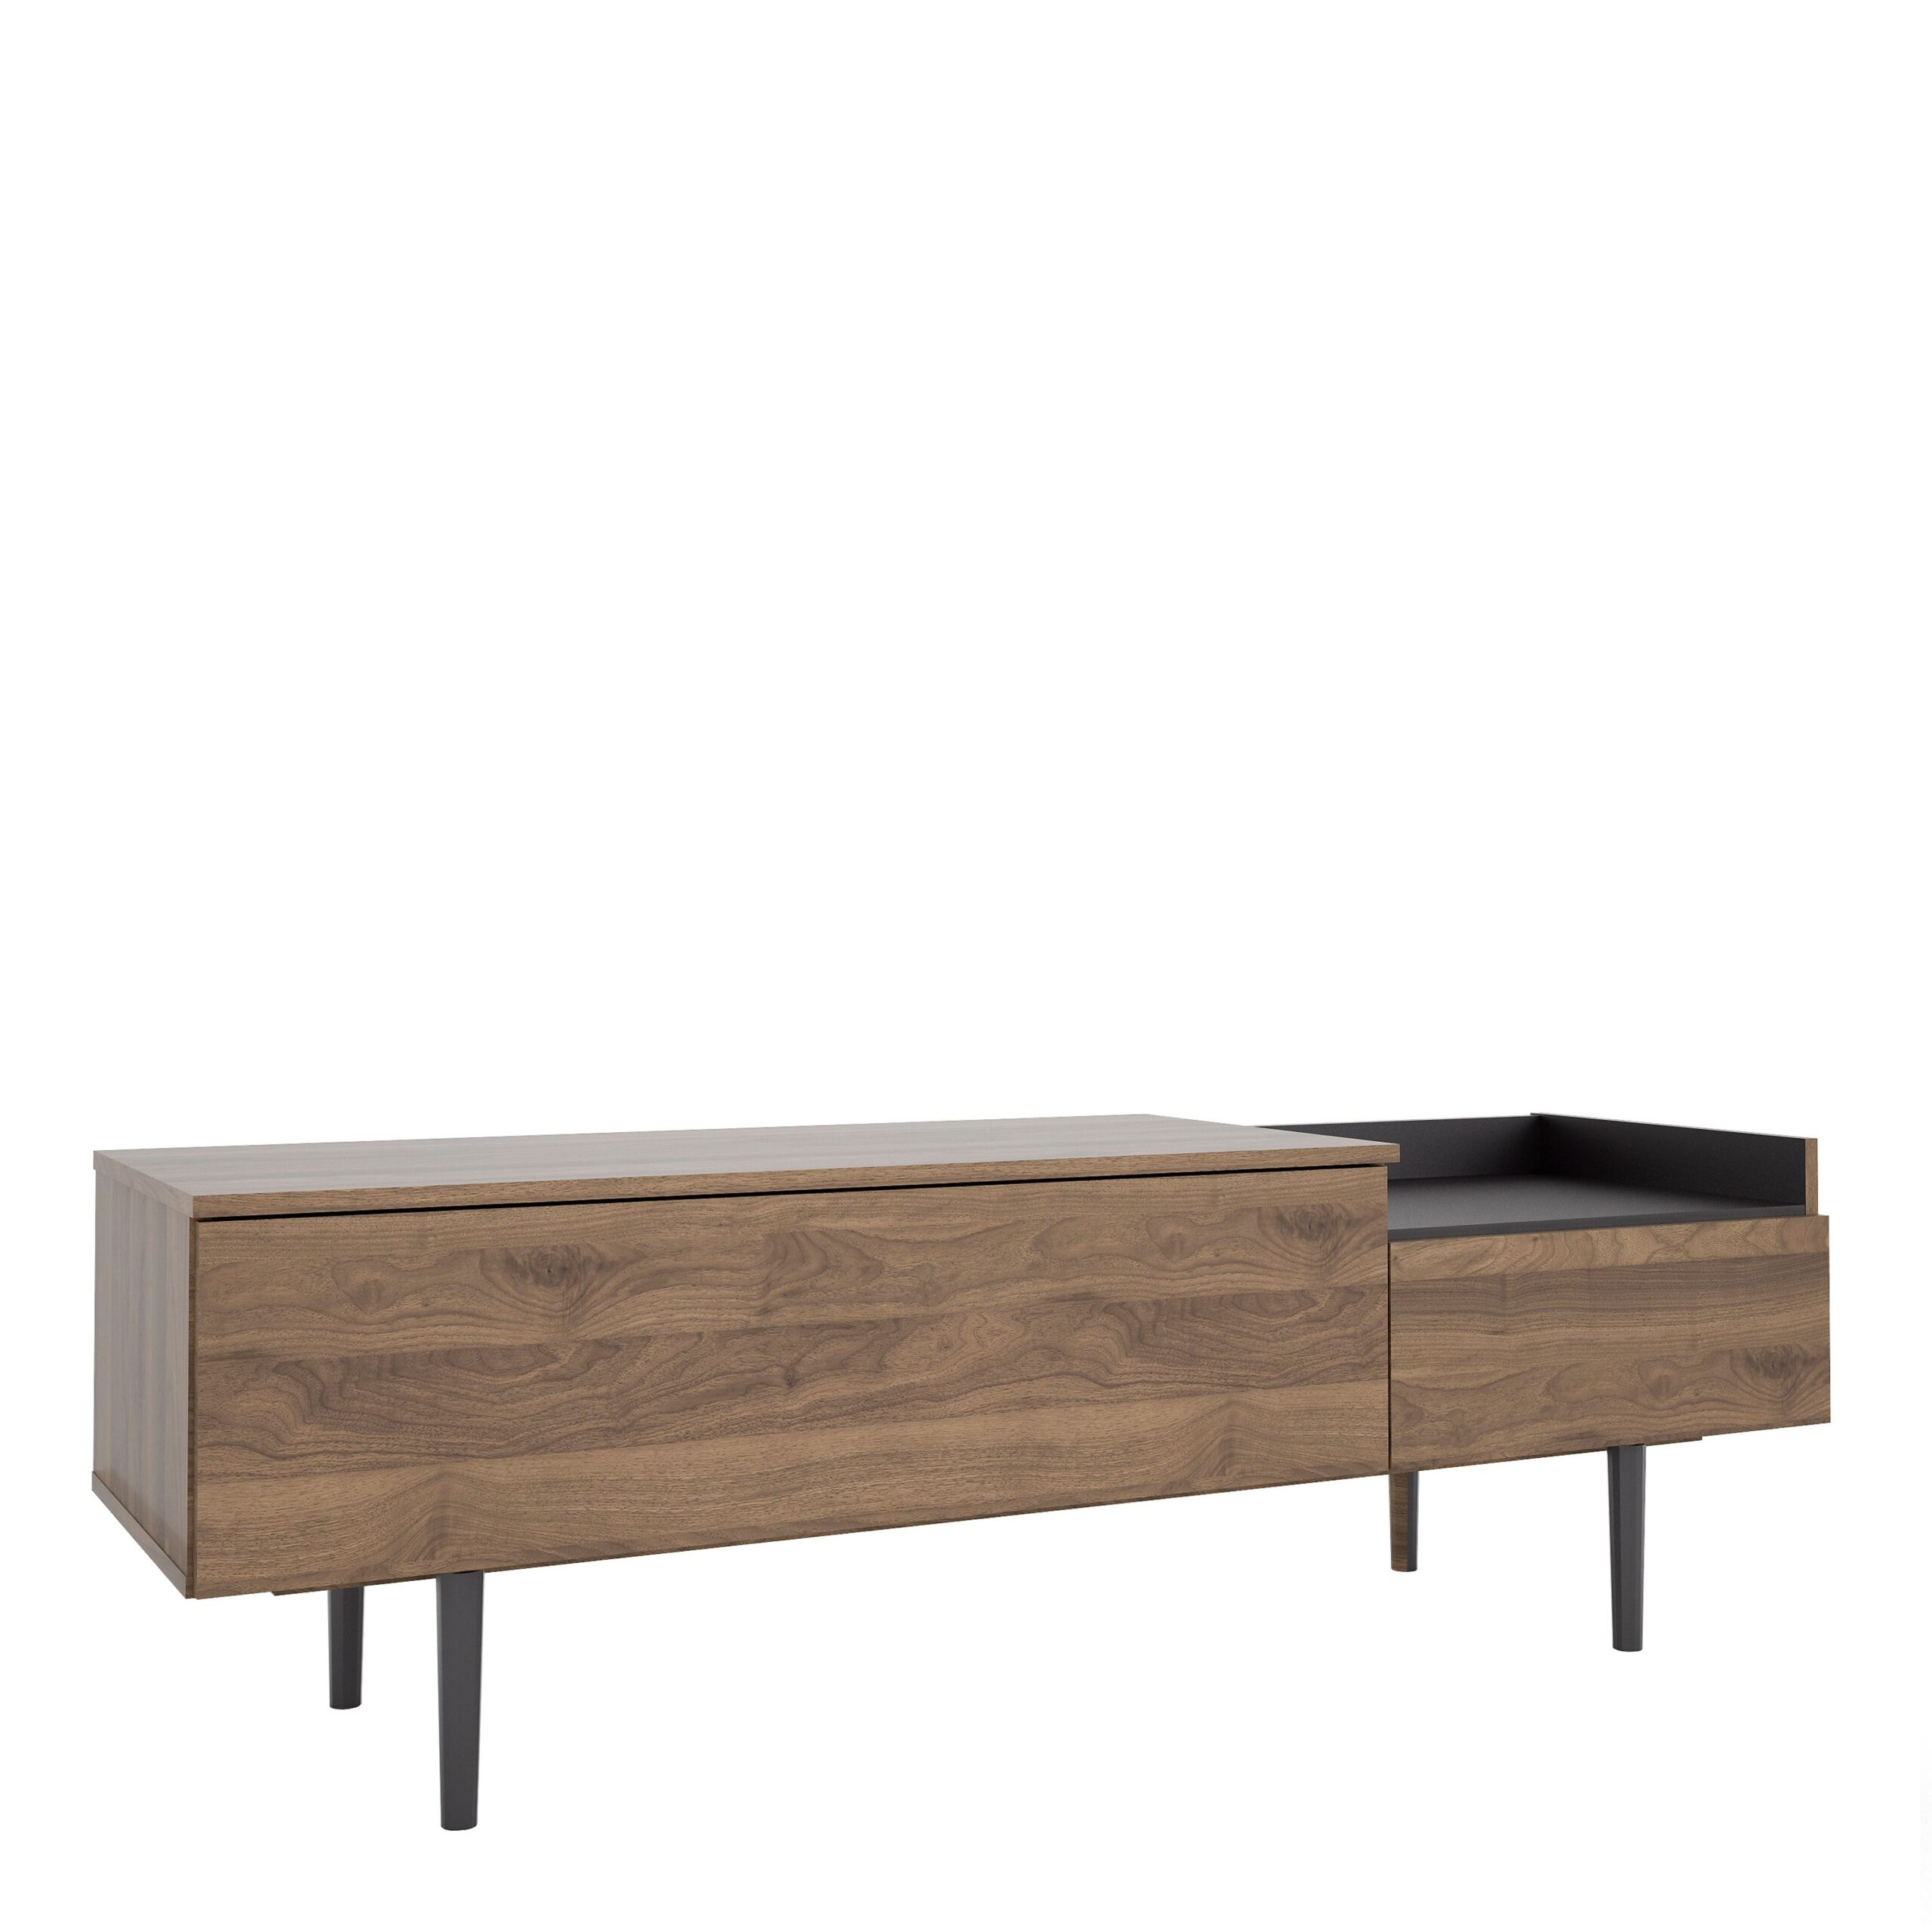 Unity Sideboard 2 Drawers in Walnut and Black